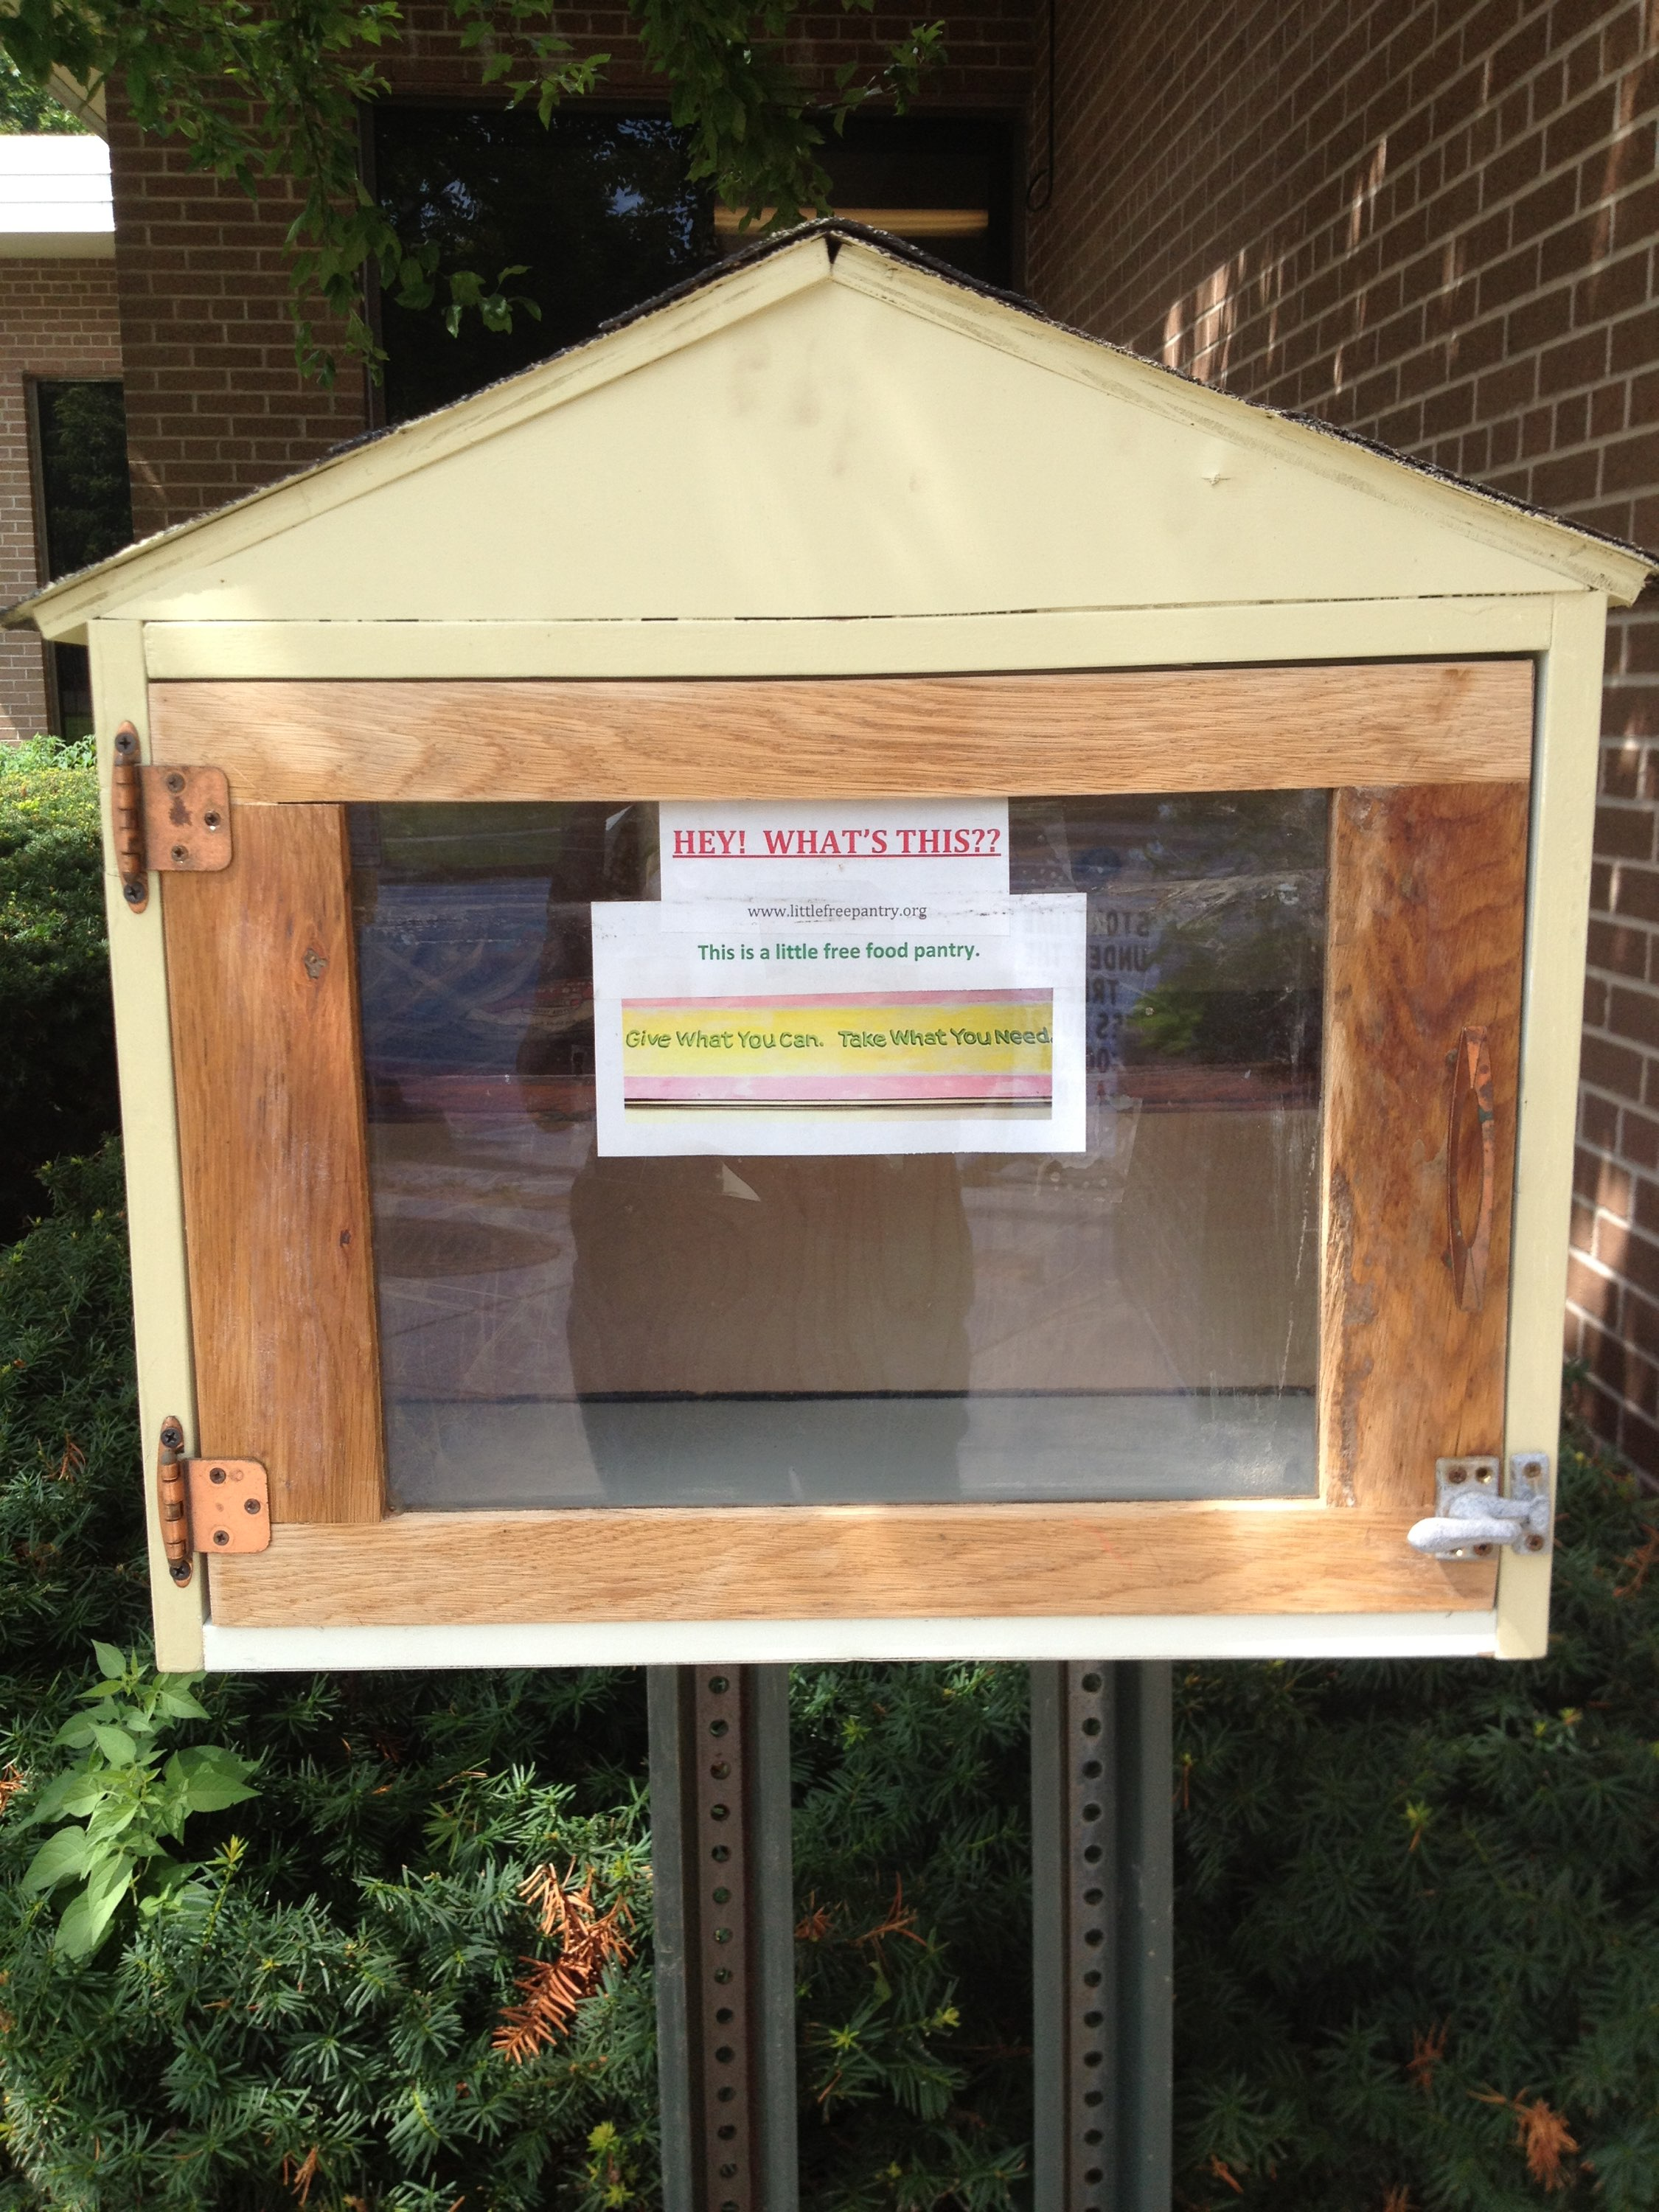 Little Free Food Pantry -WintonBranch Library Photo 1